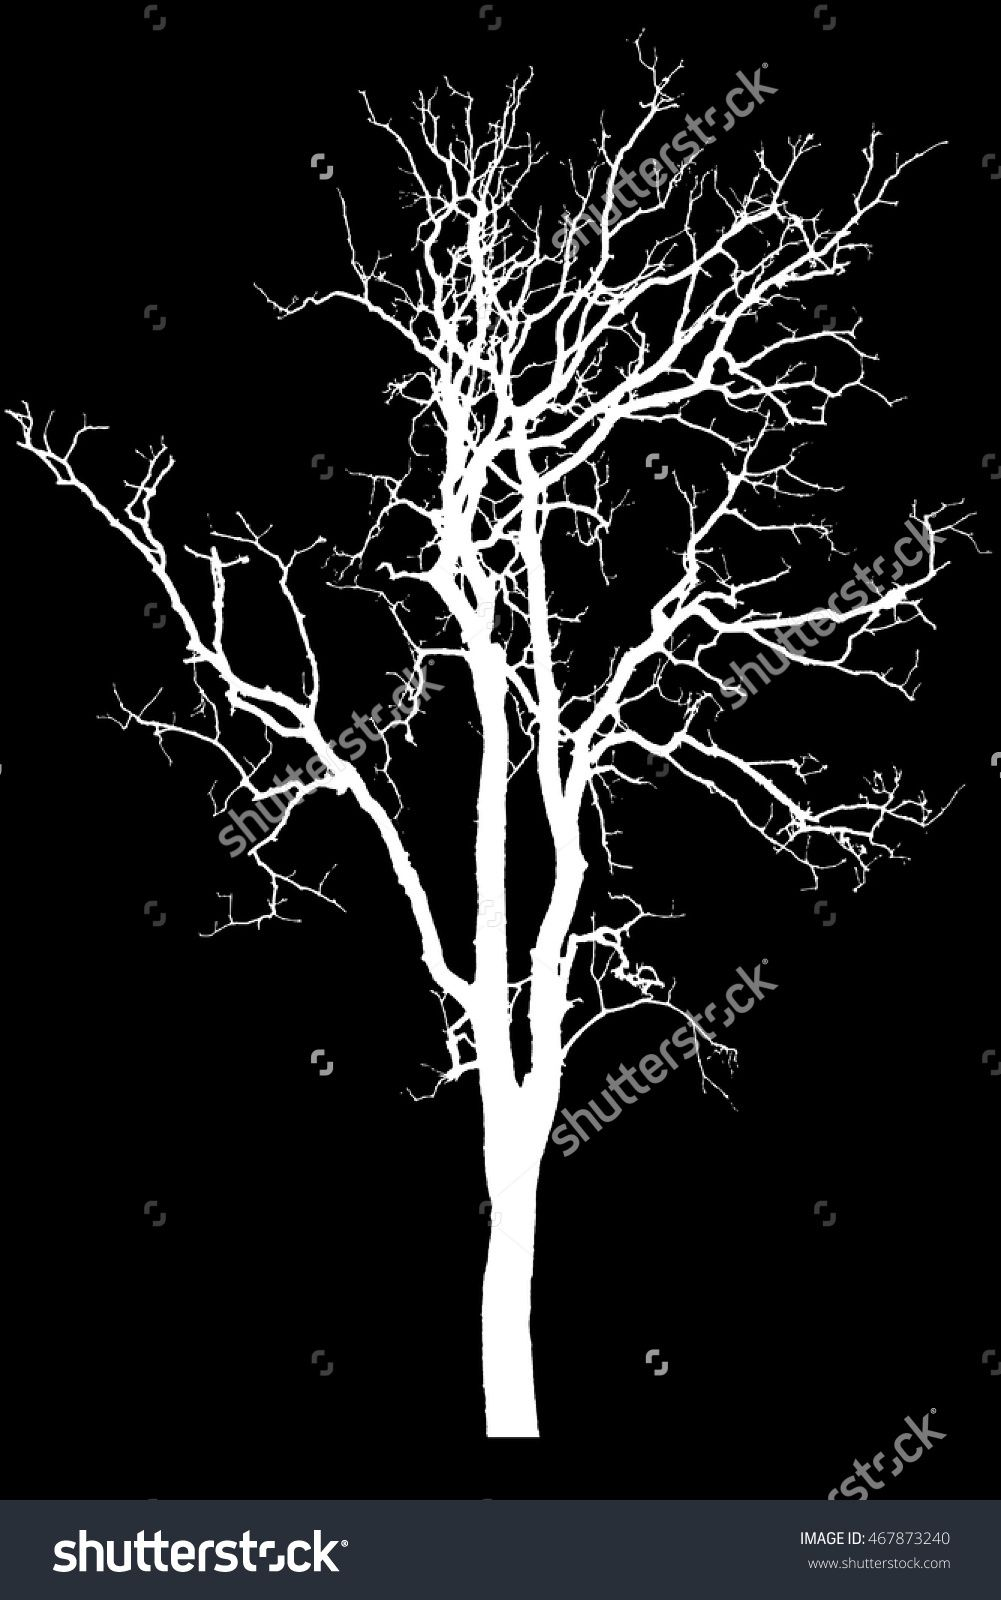 Silhouette Tree Isolated On Black Background With Clipping Path Tree Dry Dead Silhouette White Black Background Painting Landscape Tattoo Tree Silhouette